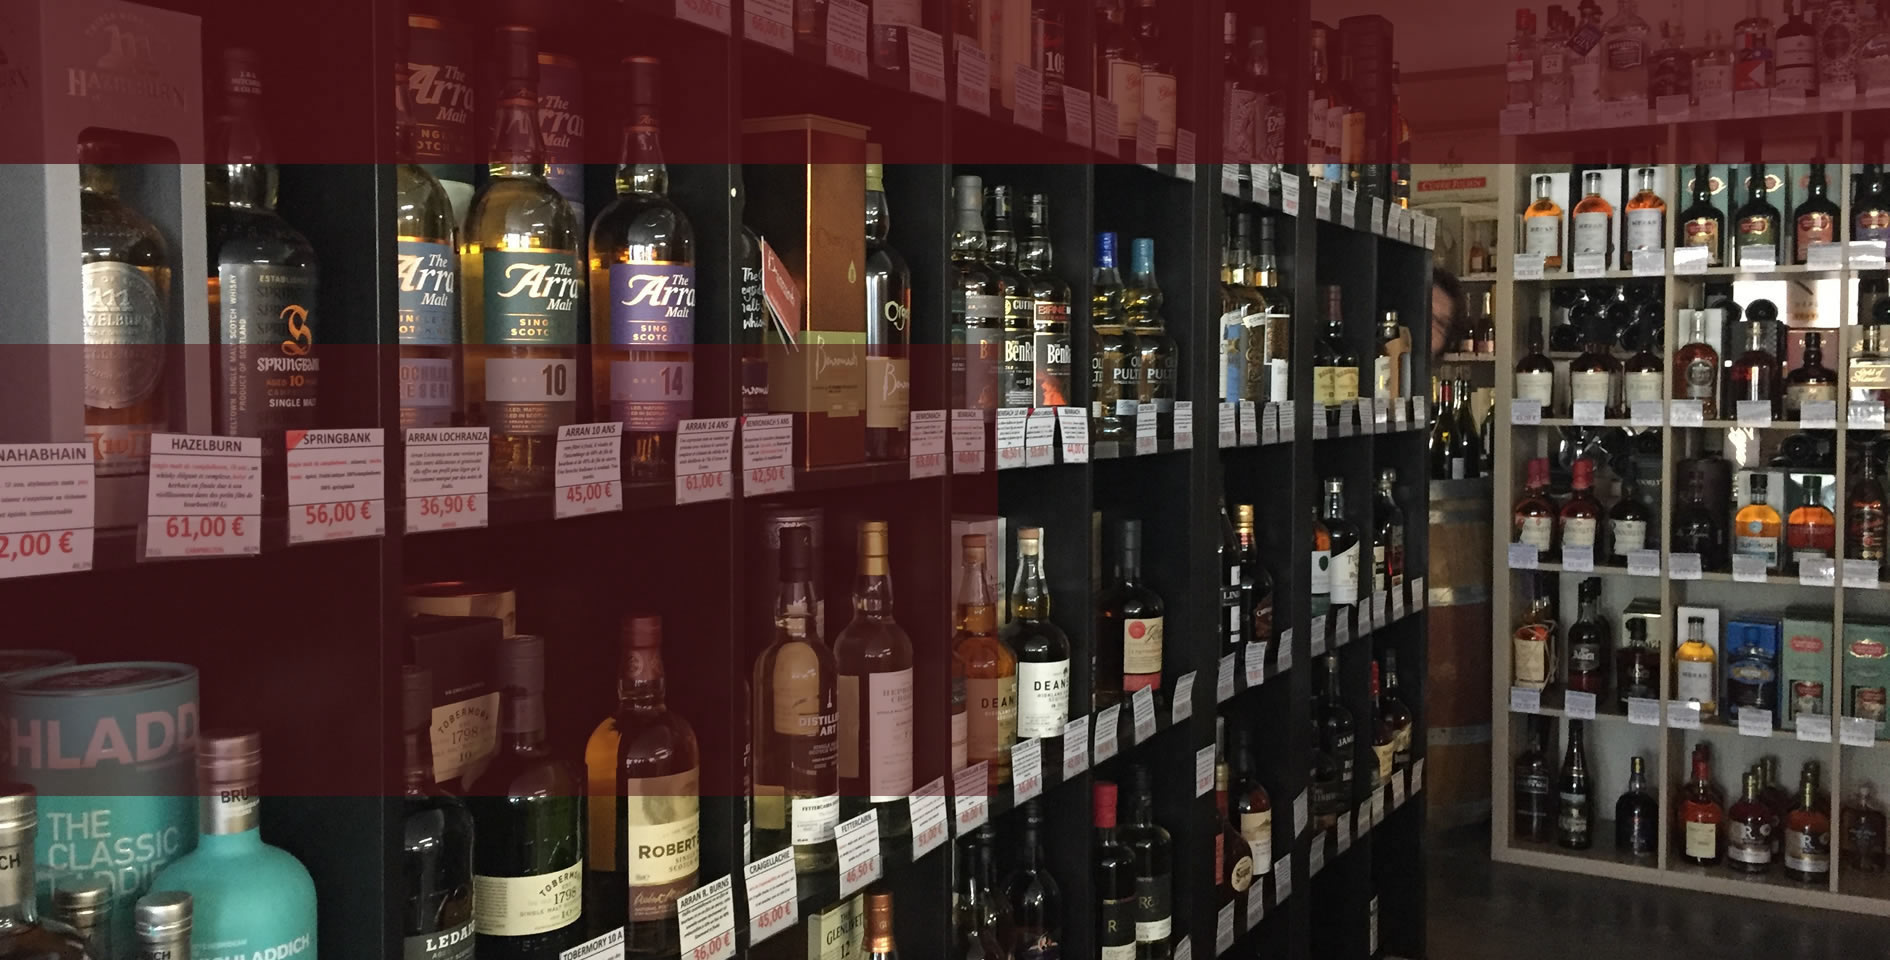 Over 100 Whiskies in Stock